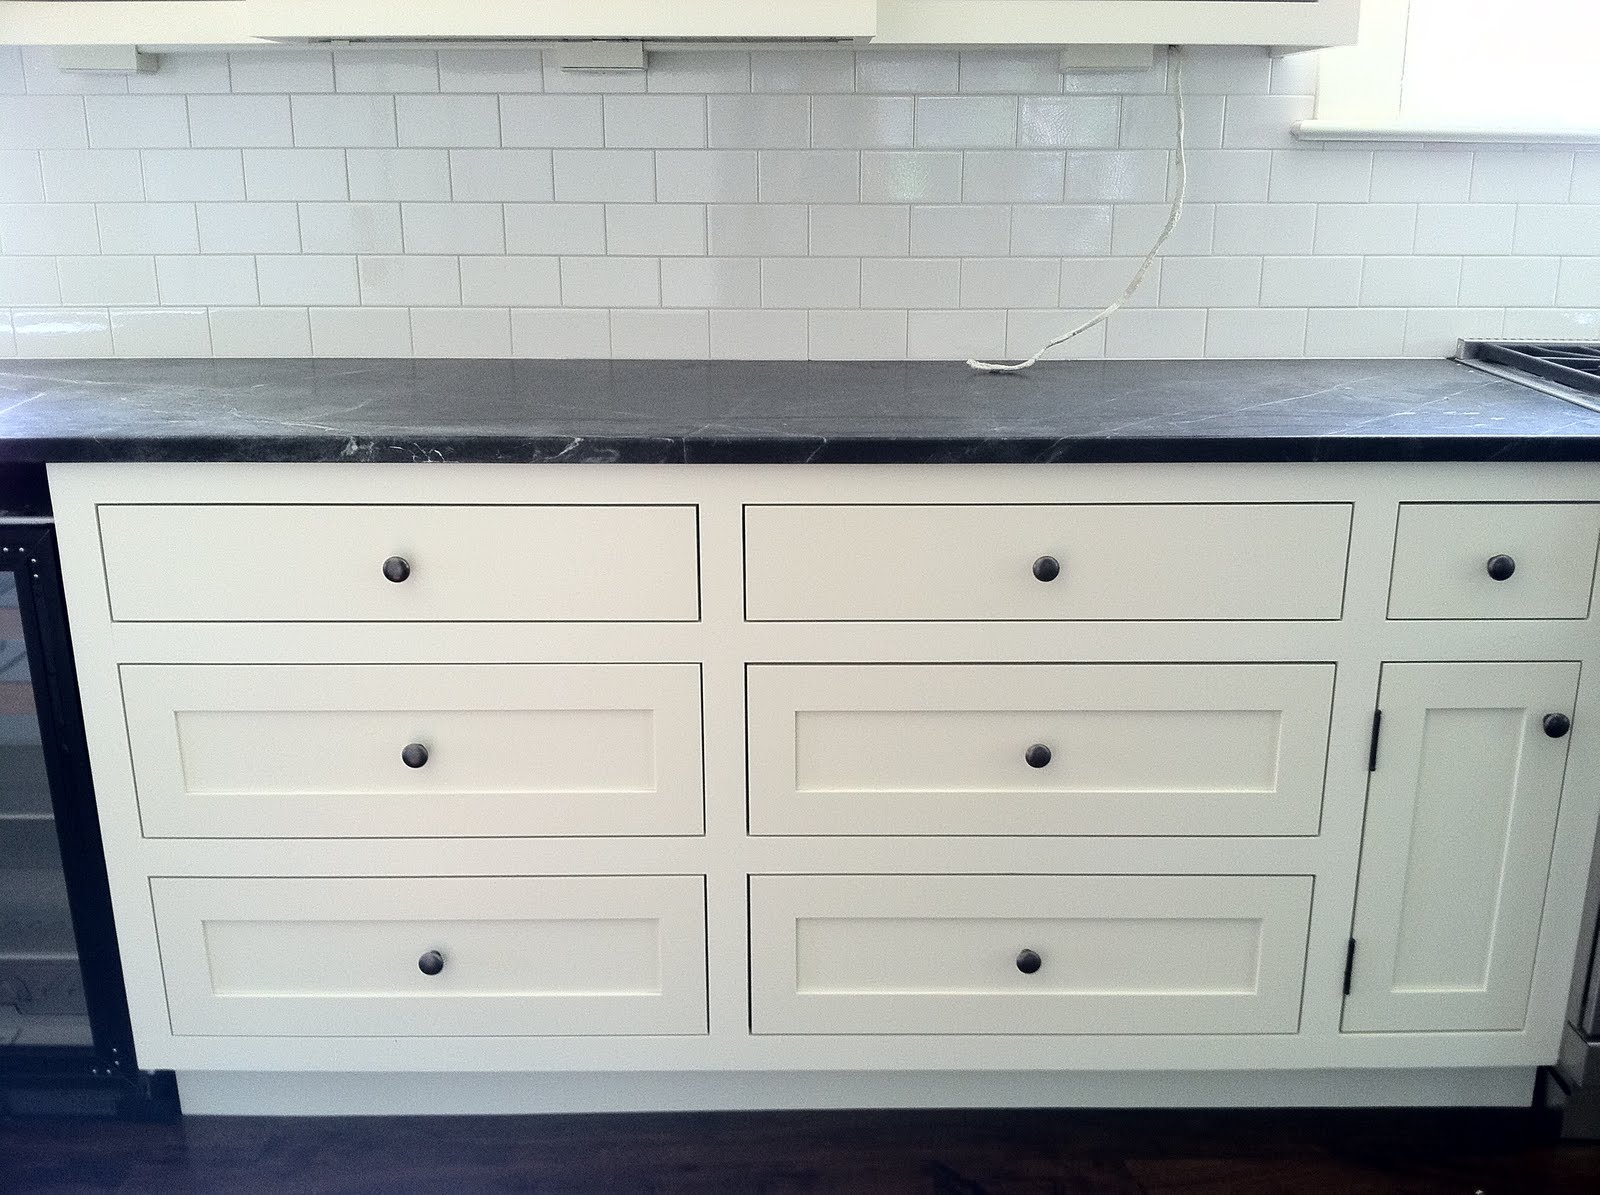 Kitchen Cabinet Faces Being Boulder Face Frame Cabinetry